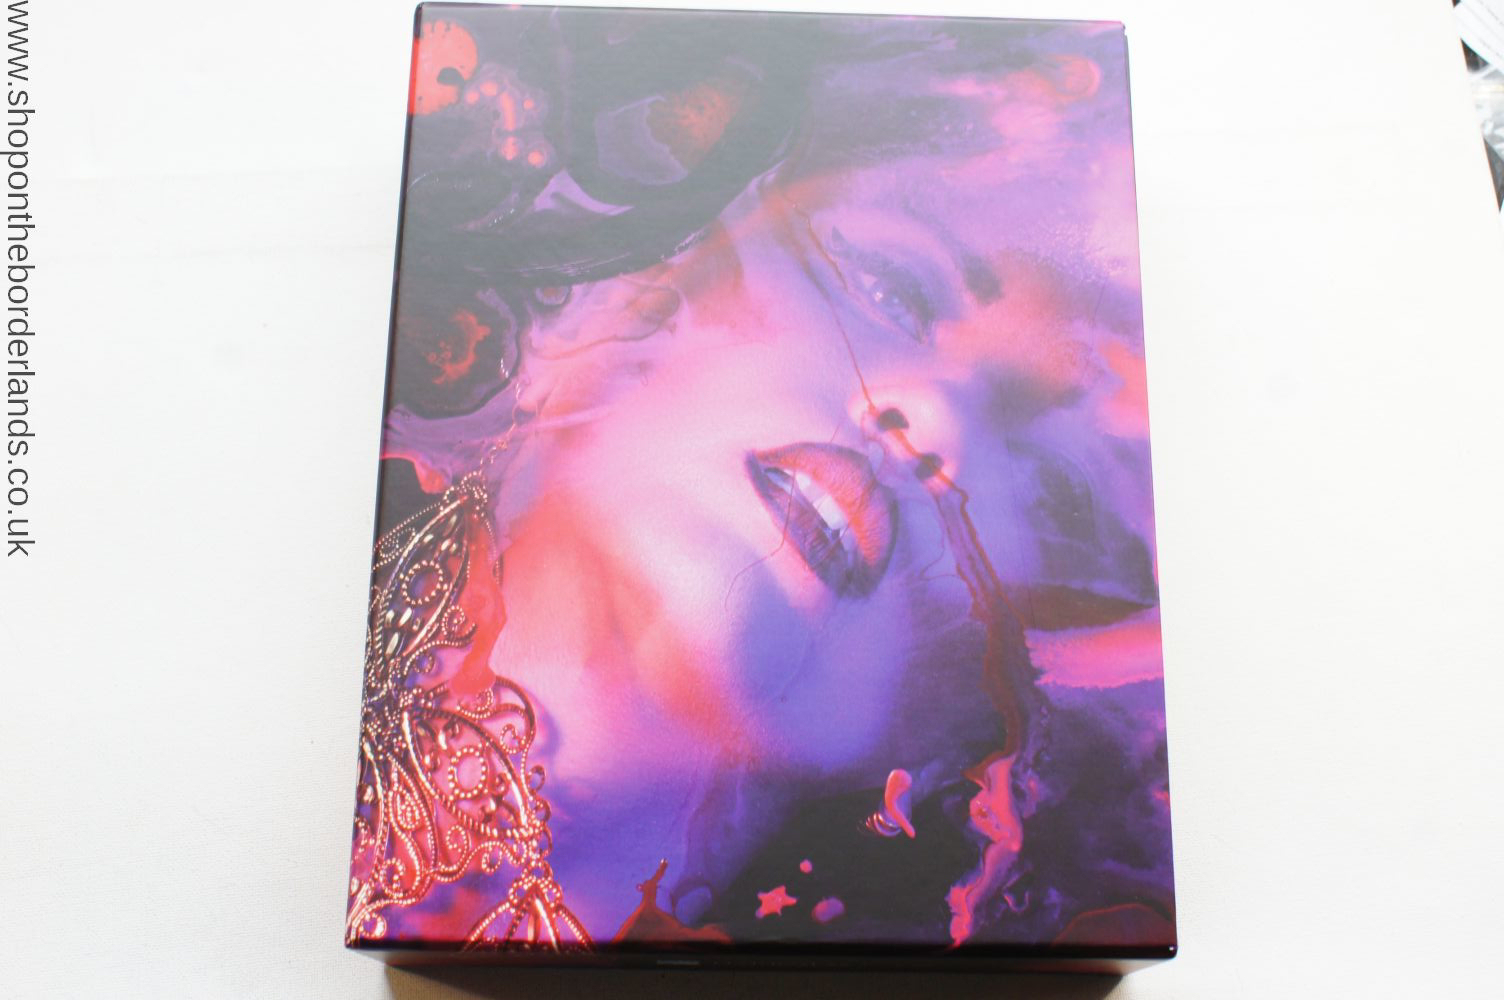 Vampire: The Masquerade Fifth Edition Slipcase Set, hardback roleplaying  game